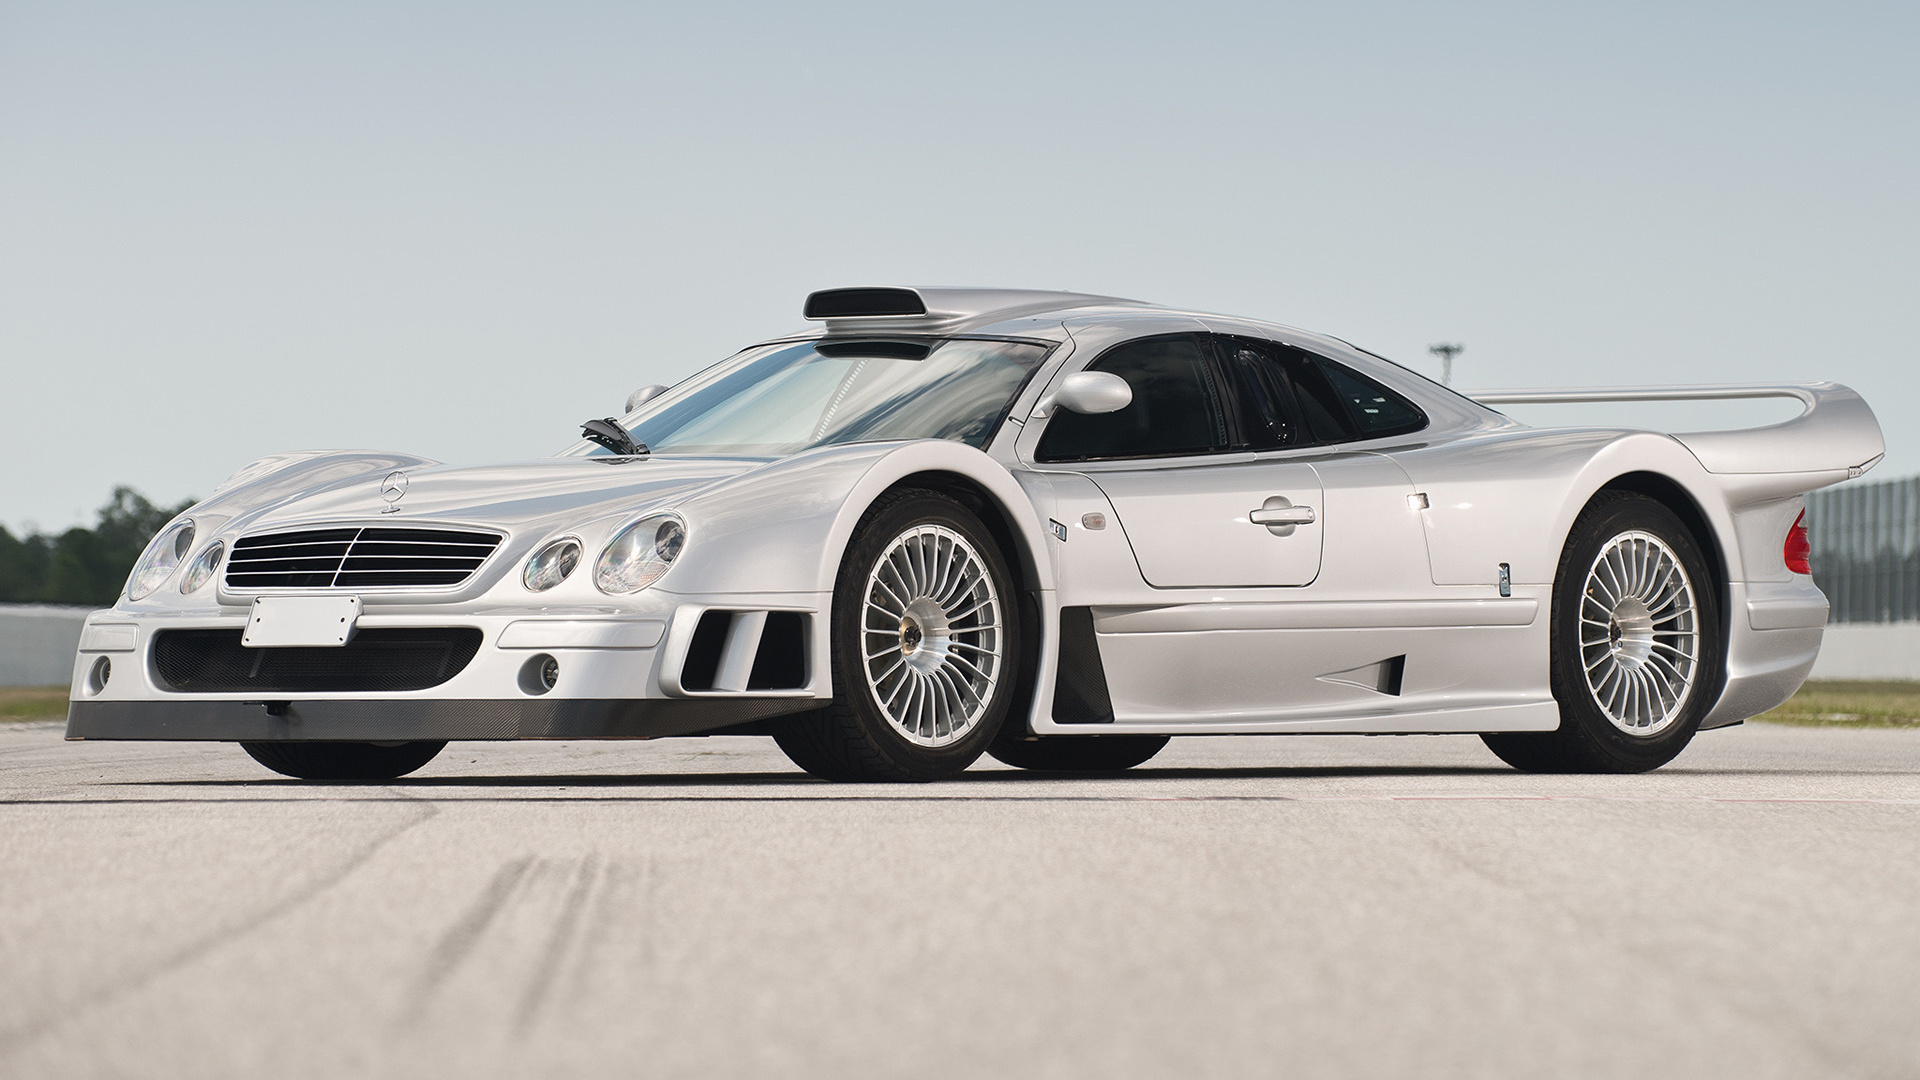 2005 mercedes benz clk gtr photos informations articles for Mercedes benz clk